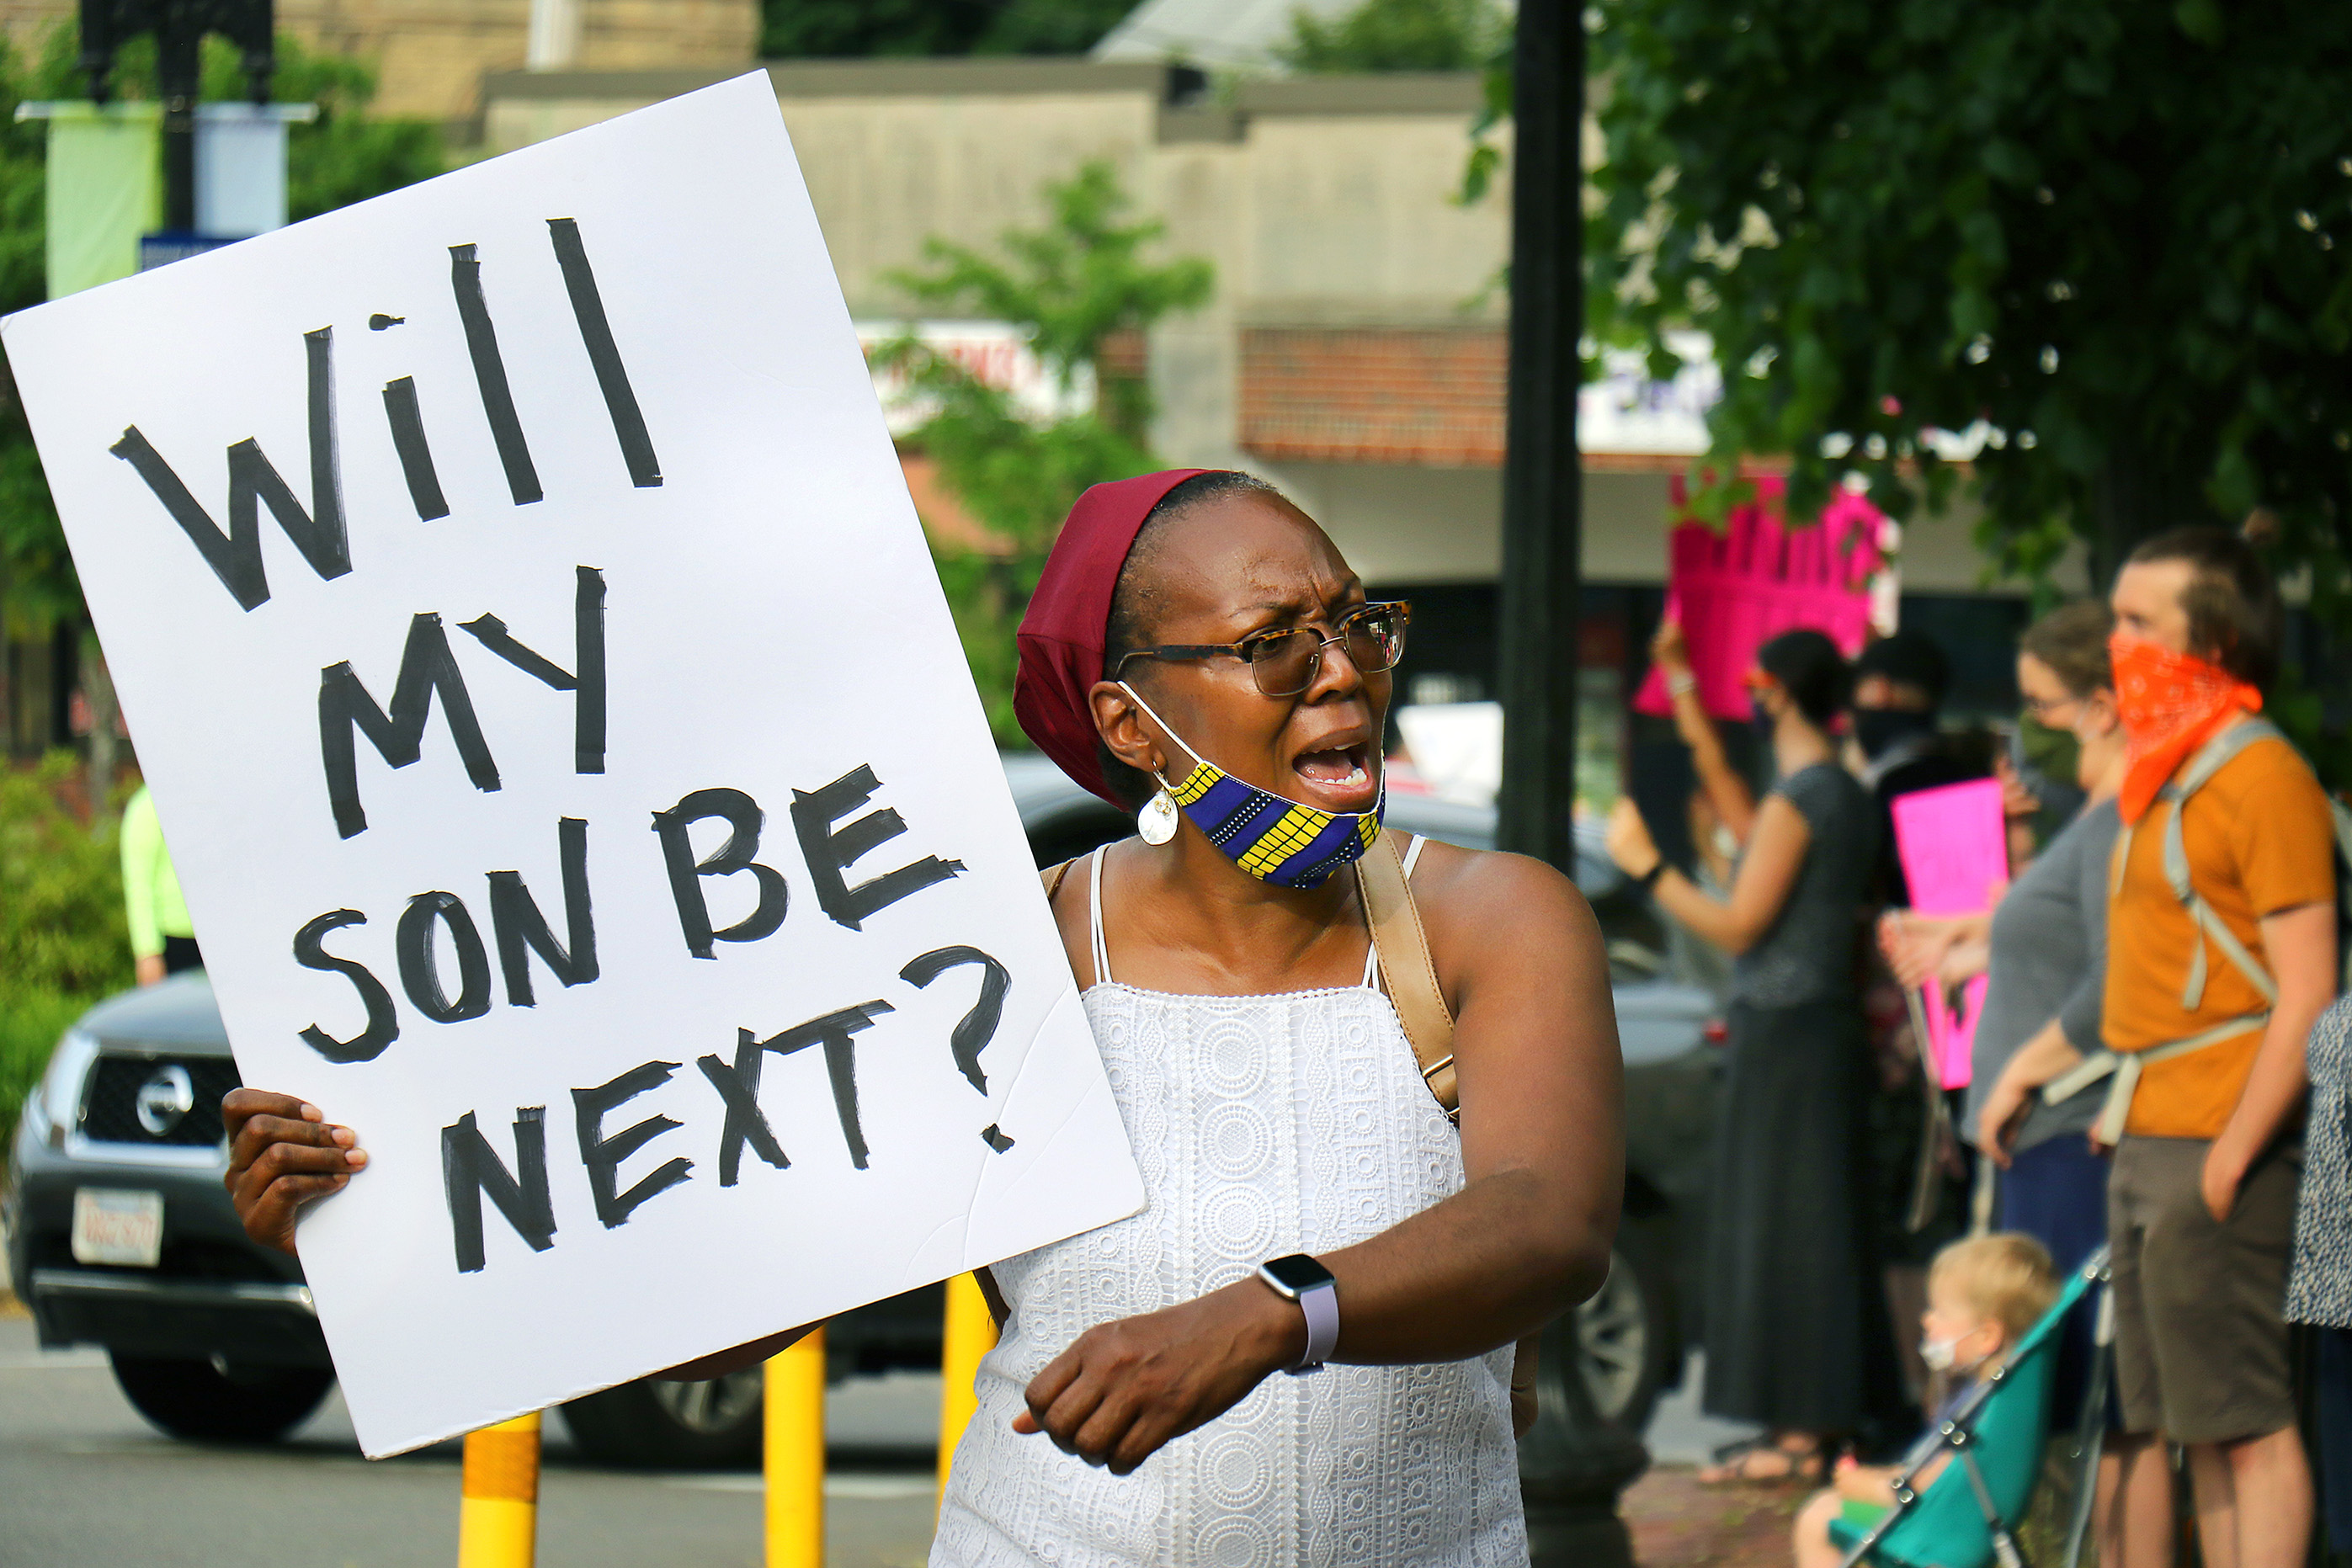 """BOSTON, MA - JUNE 4: Leandrea Brantle from Roslindale holds a sign asking """"Will my son be next?"""" at A Silent Vigil for Black Lives in Adams Park in Boston on June 4, 2020. Protesters gather calling for justice for George Floyd and other Black Americans killed by police officers on the day of Floyd's funeral. (Photo by John Tlumacki/The Boston Globe via Getty Images)"""